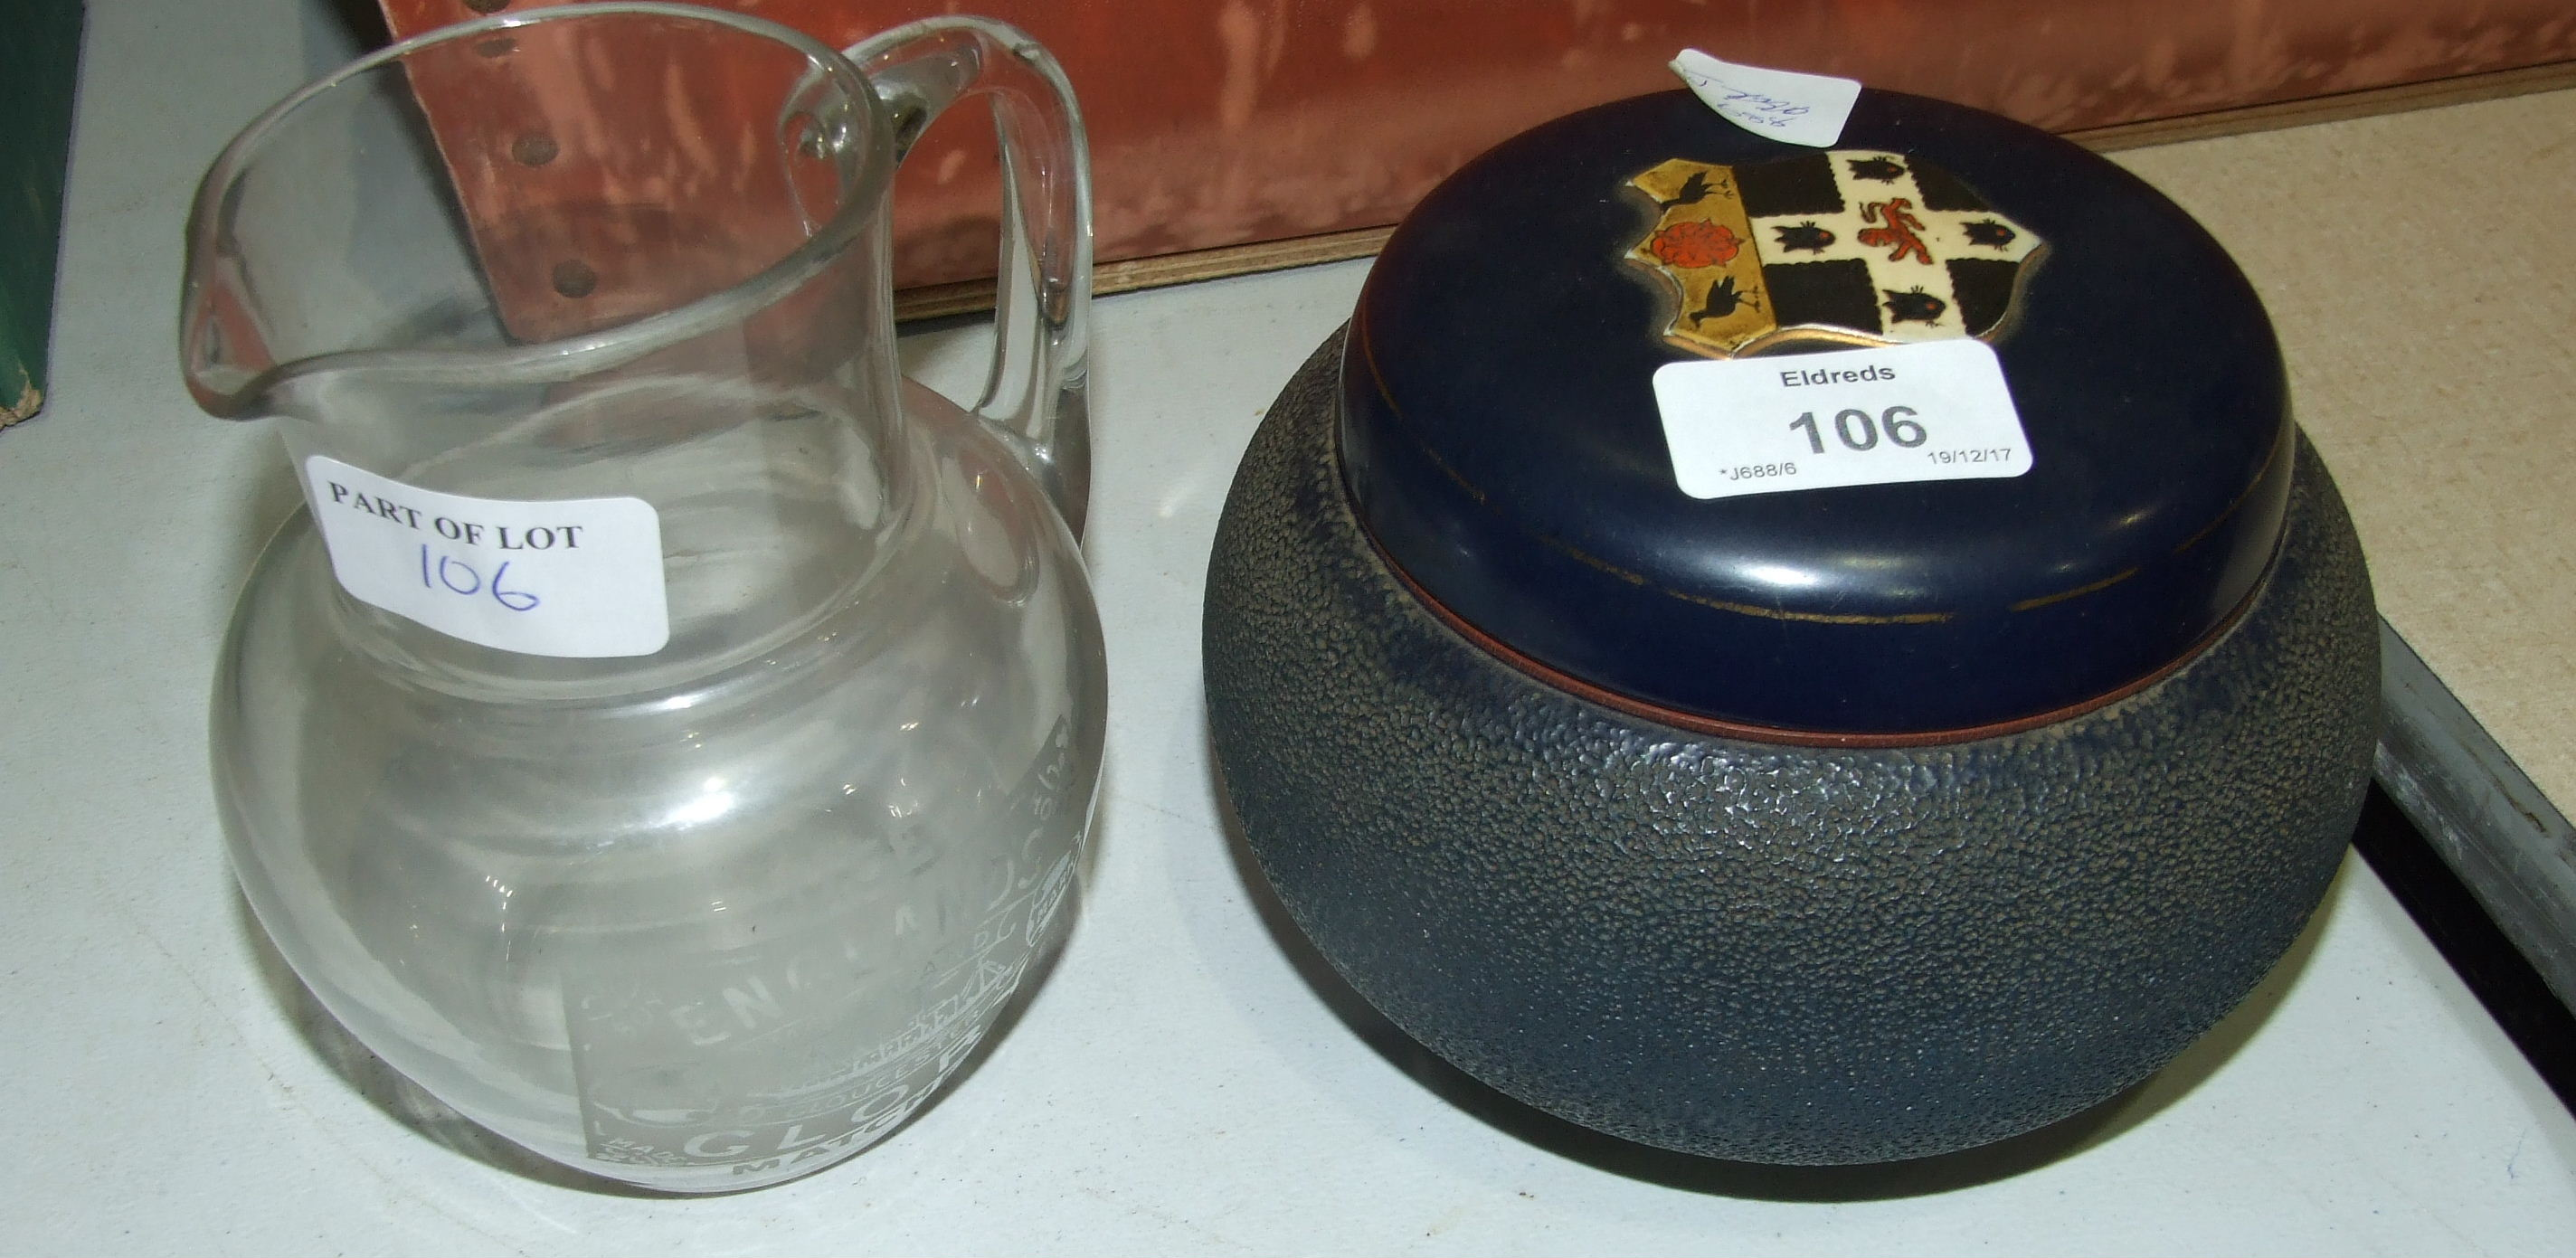 Lot 106 - A Carlton Ware ceramic tobacco jar made for SH Jones, Oxford and various other smoking accessories.